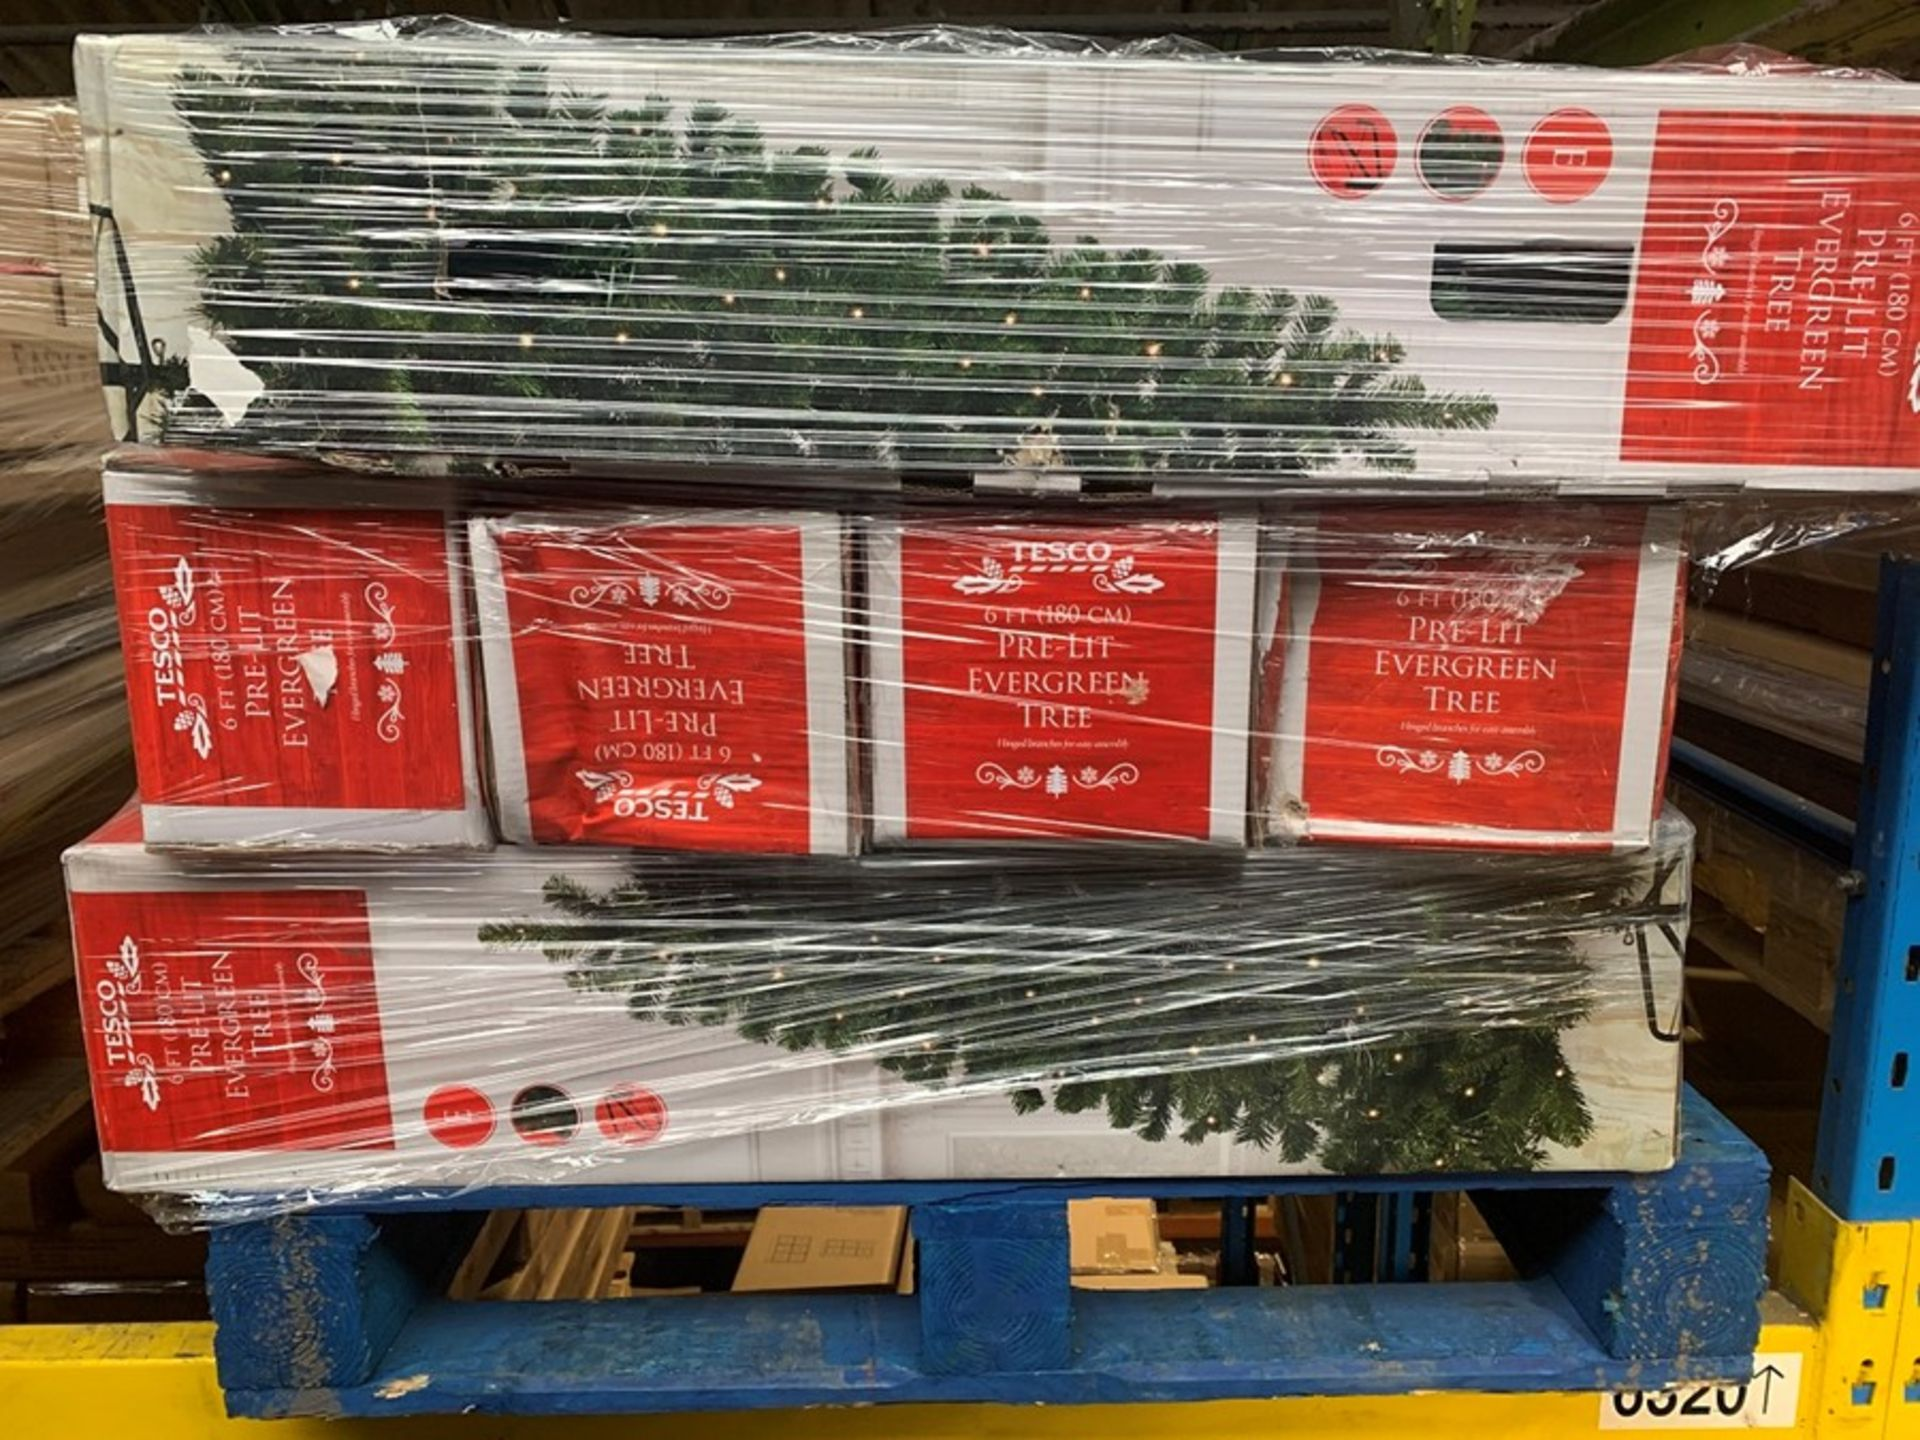 Lot 10 - 1 LOT TO CONTAIN 15 TESCO CHRISTMAS TREES IN 4FT AND 6FT SIZING (PUBLIC VIEWING AVAILABLE)